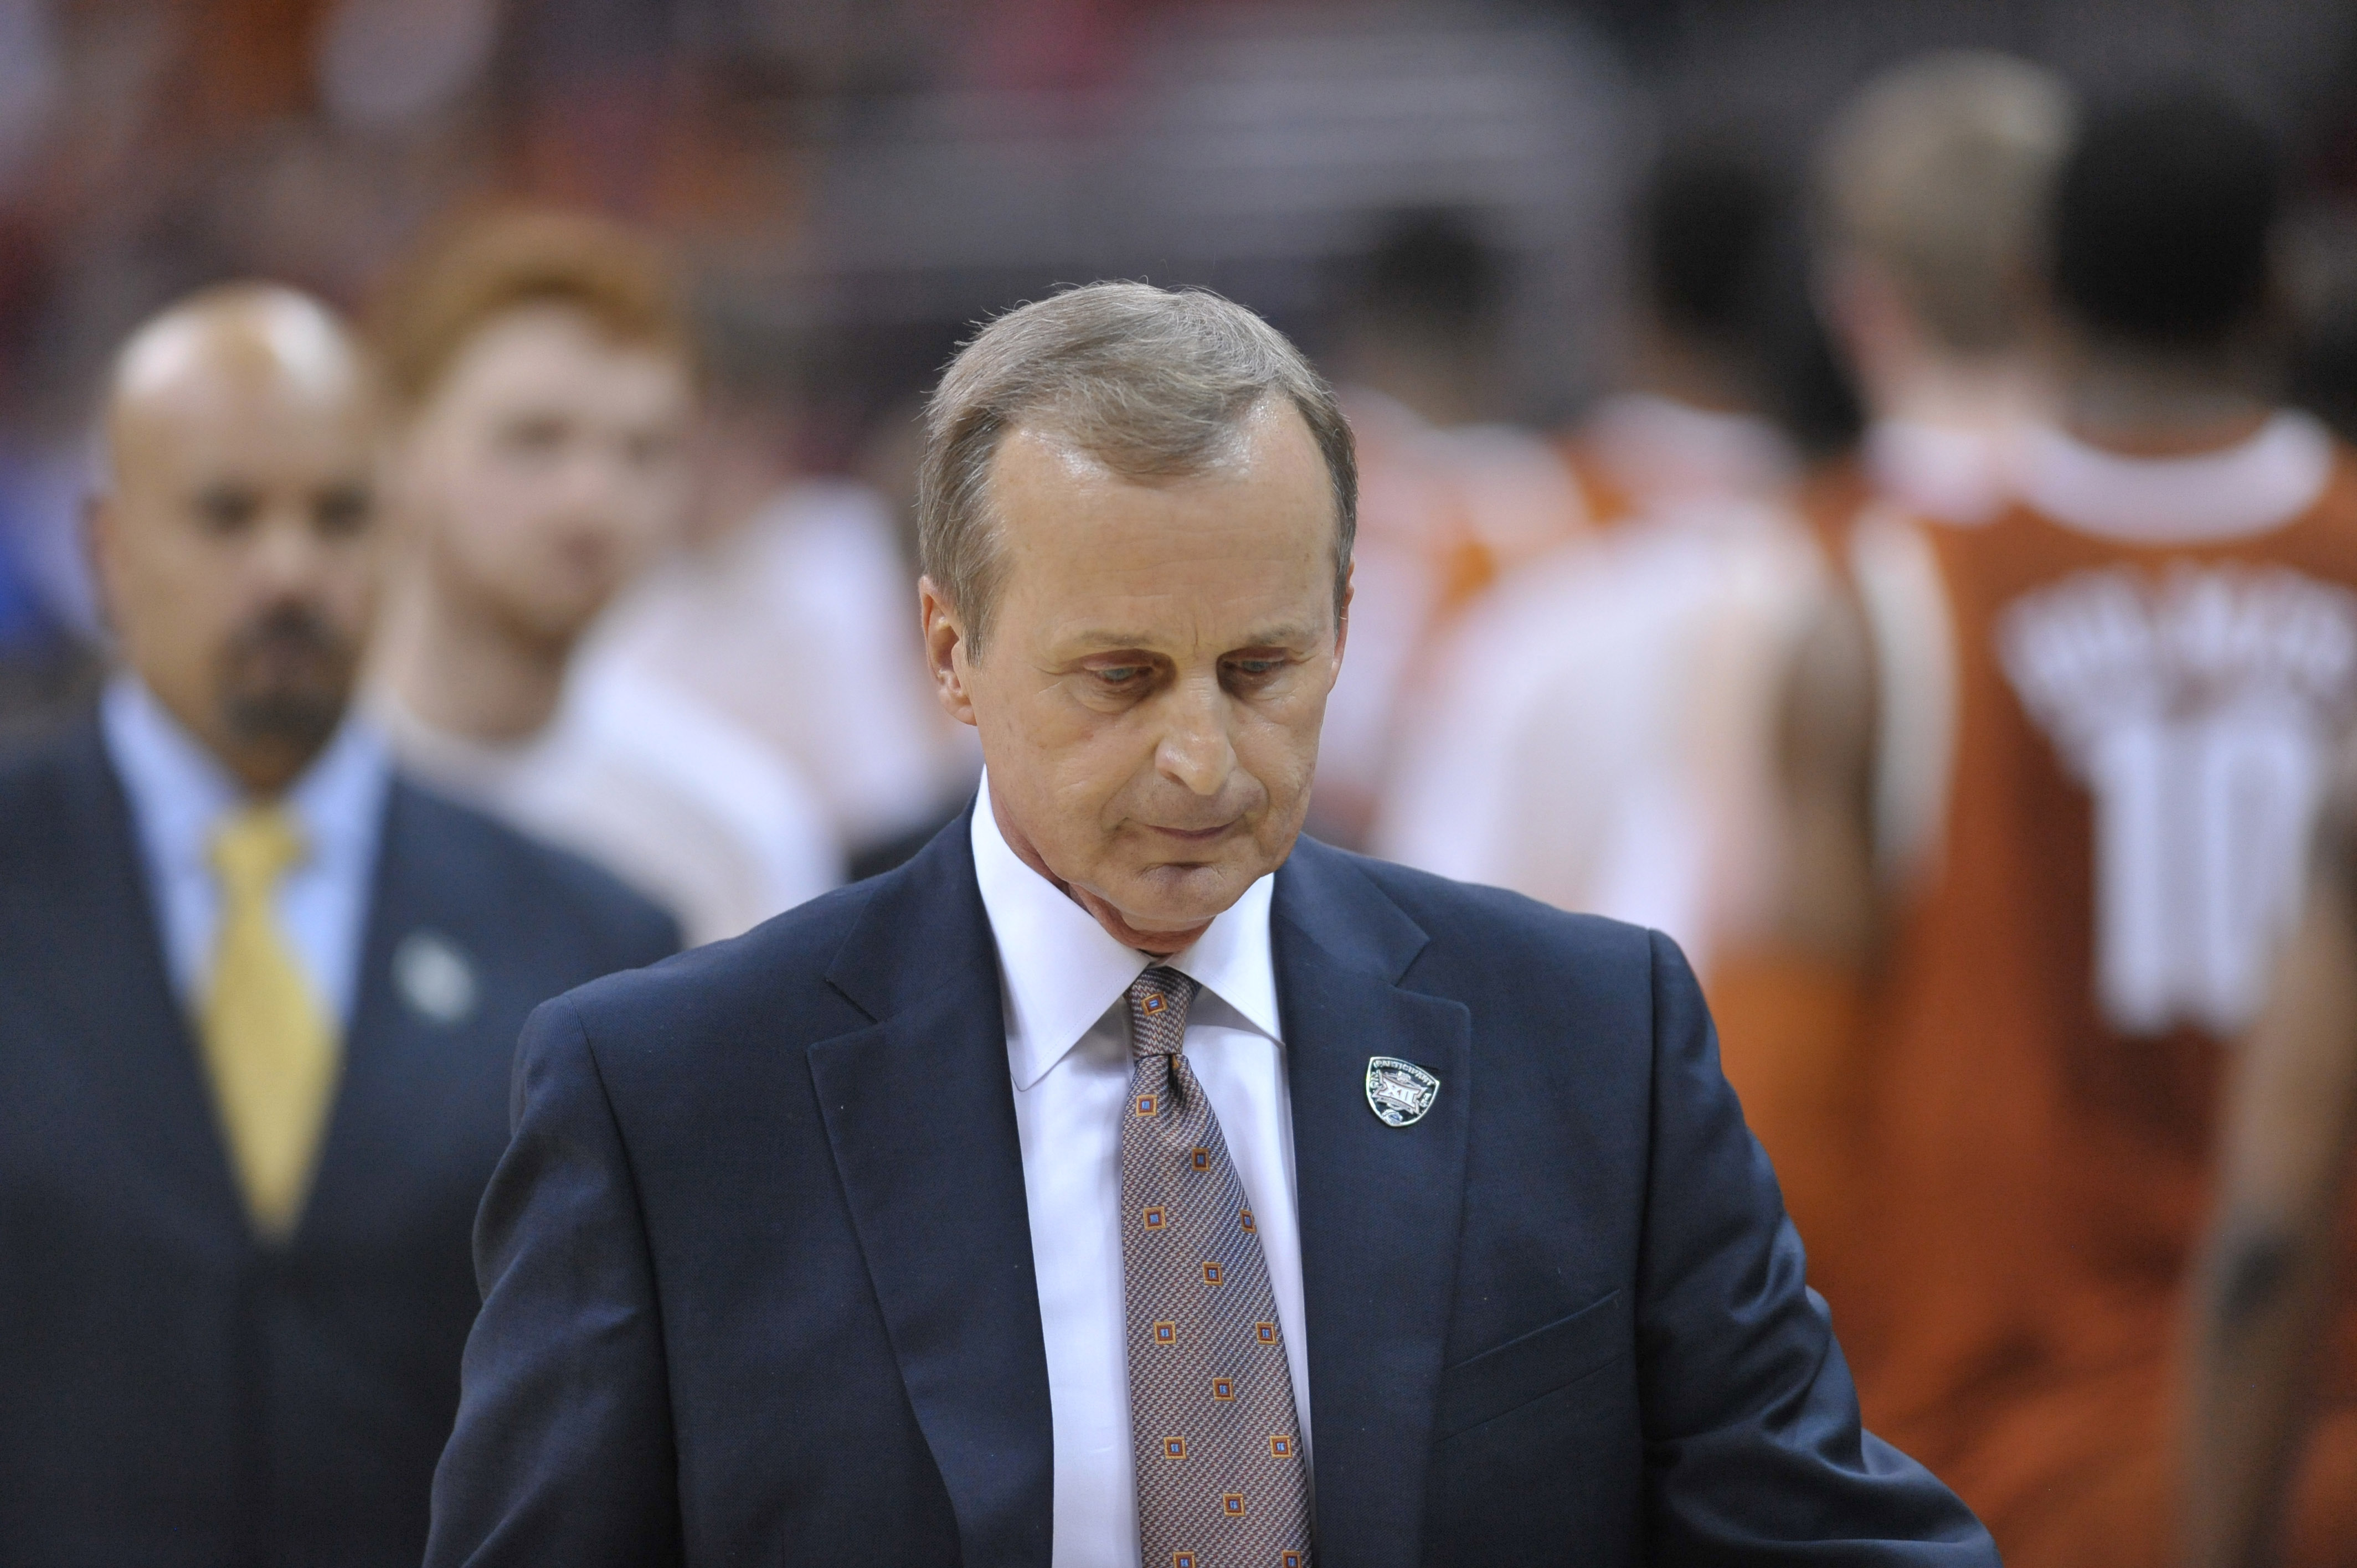 Is Rick Barnes' seat still warm? A close loss to the Cyclones didn't really damage the Longhorns' at-large hopes.